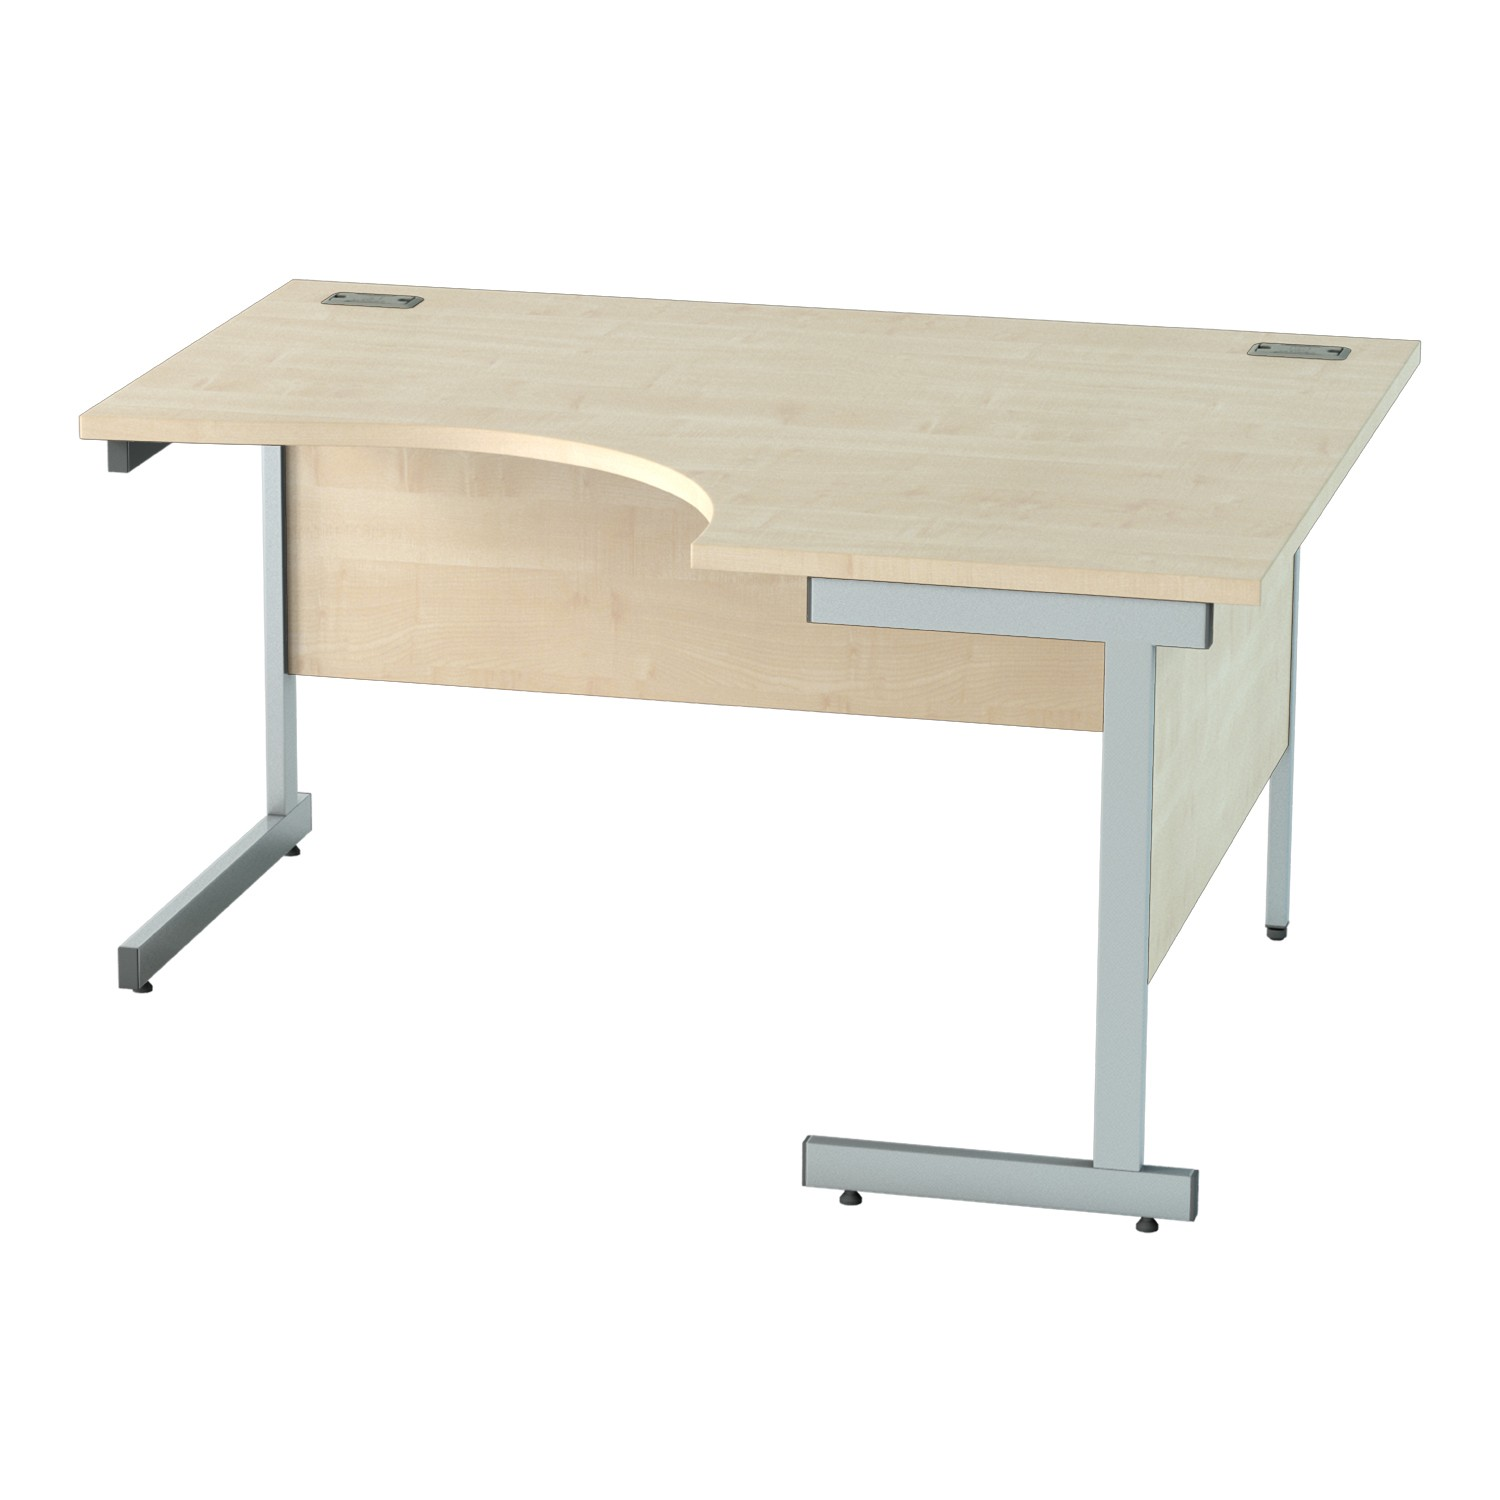 1400mm CANT R/H CRESCENT WORKSTATION